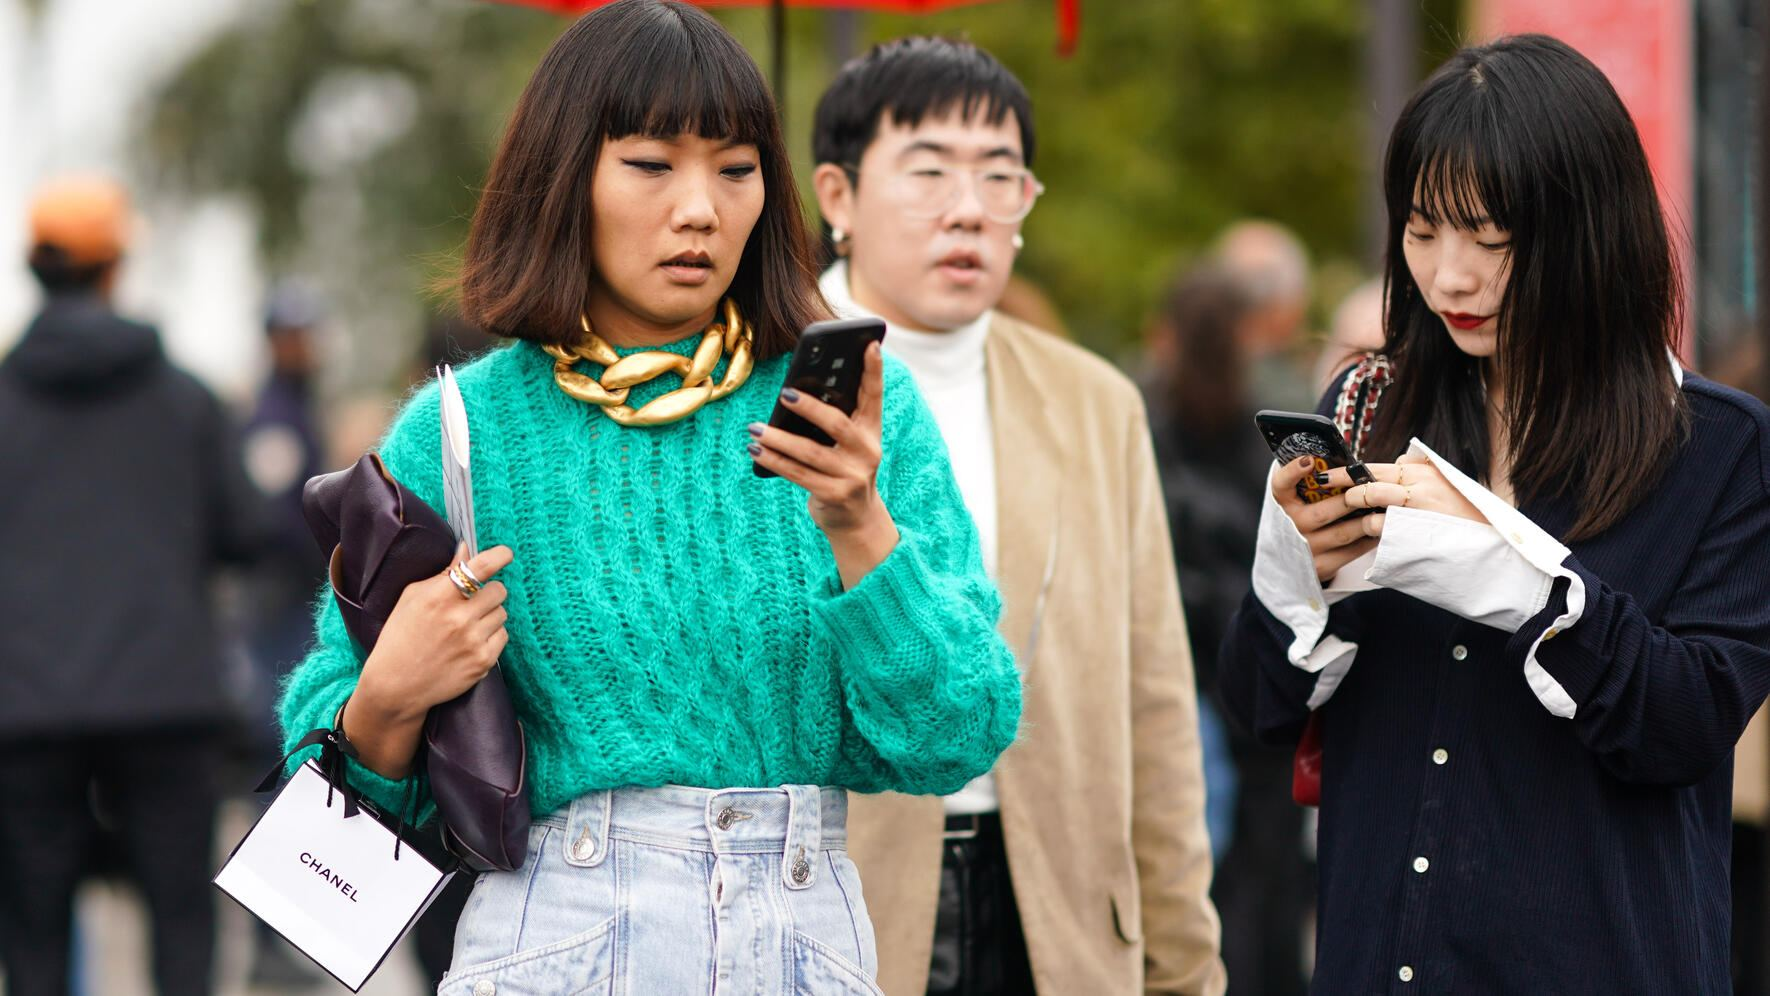 PARIS, FRANCE - OCTOBER 01: A guest wears a green wool knitted pullover, a large chain golden necklace, denim pants,  outside Chanel, during Paris Fashion Week - Womenswear Spring Summer 2020, on October 01, 2019 in Paris, France. (Photo by Edward Berthelot/Getty Images)